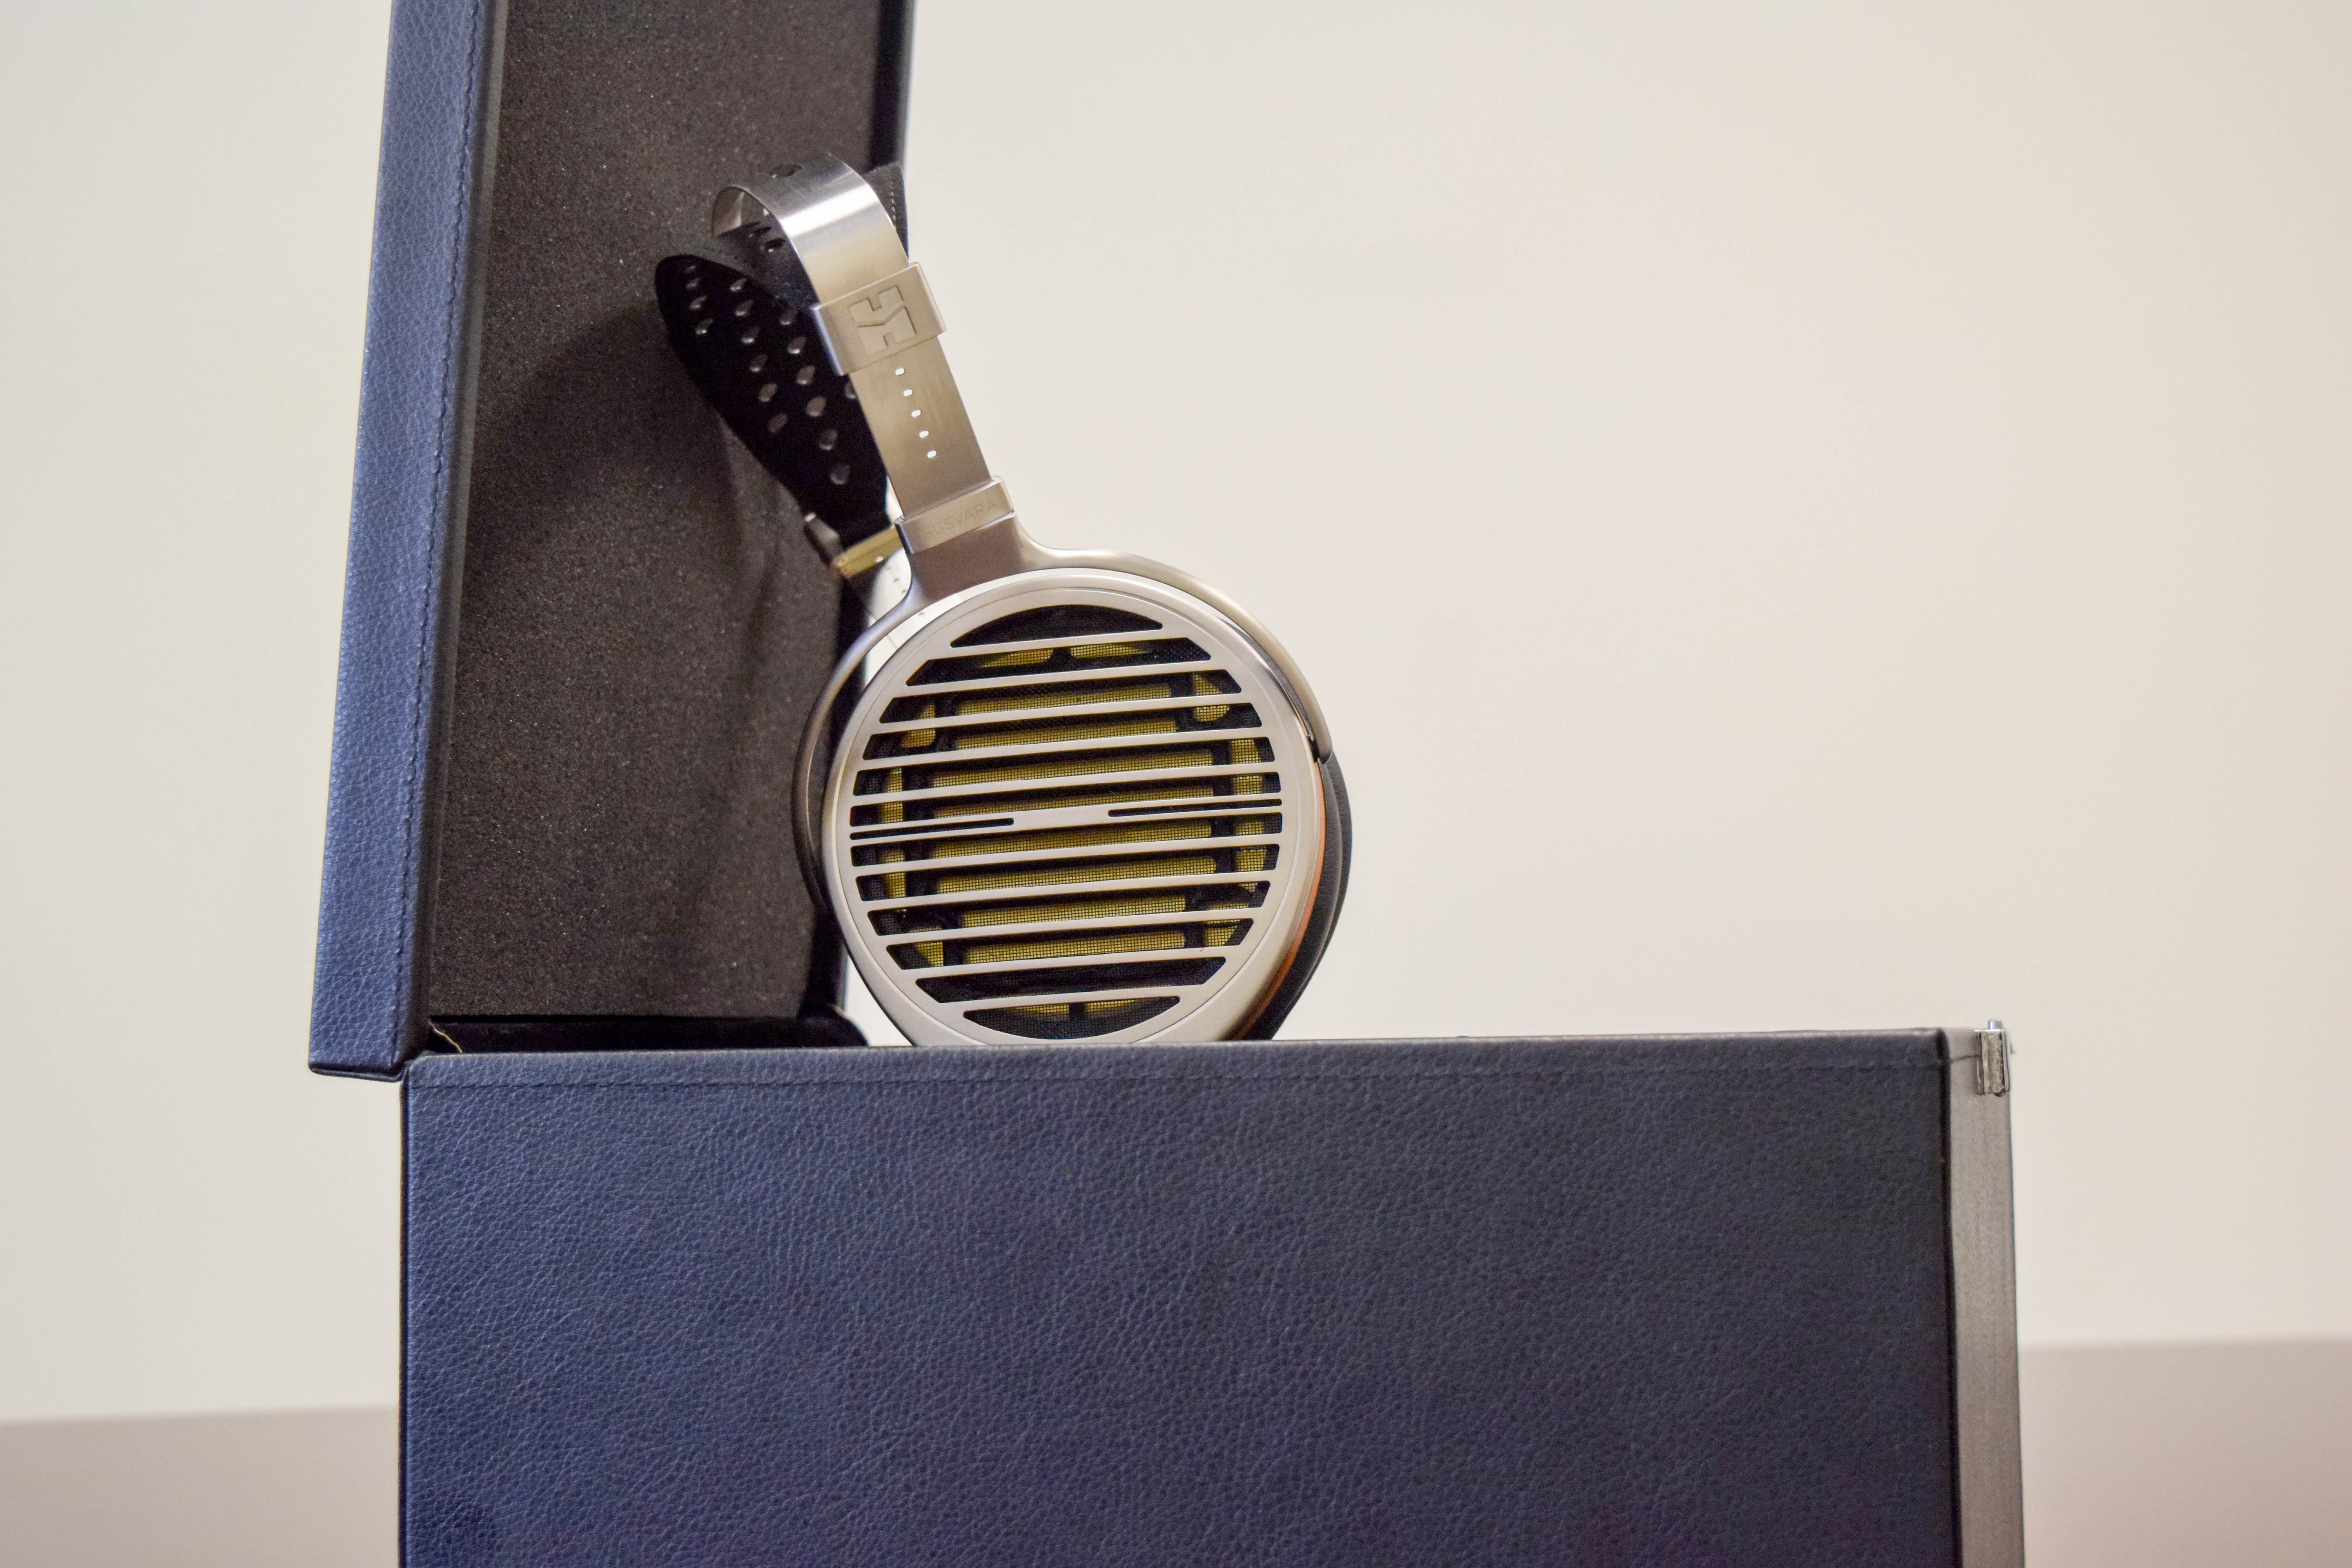 HiFiMAN Susvara headphones side profile